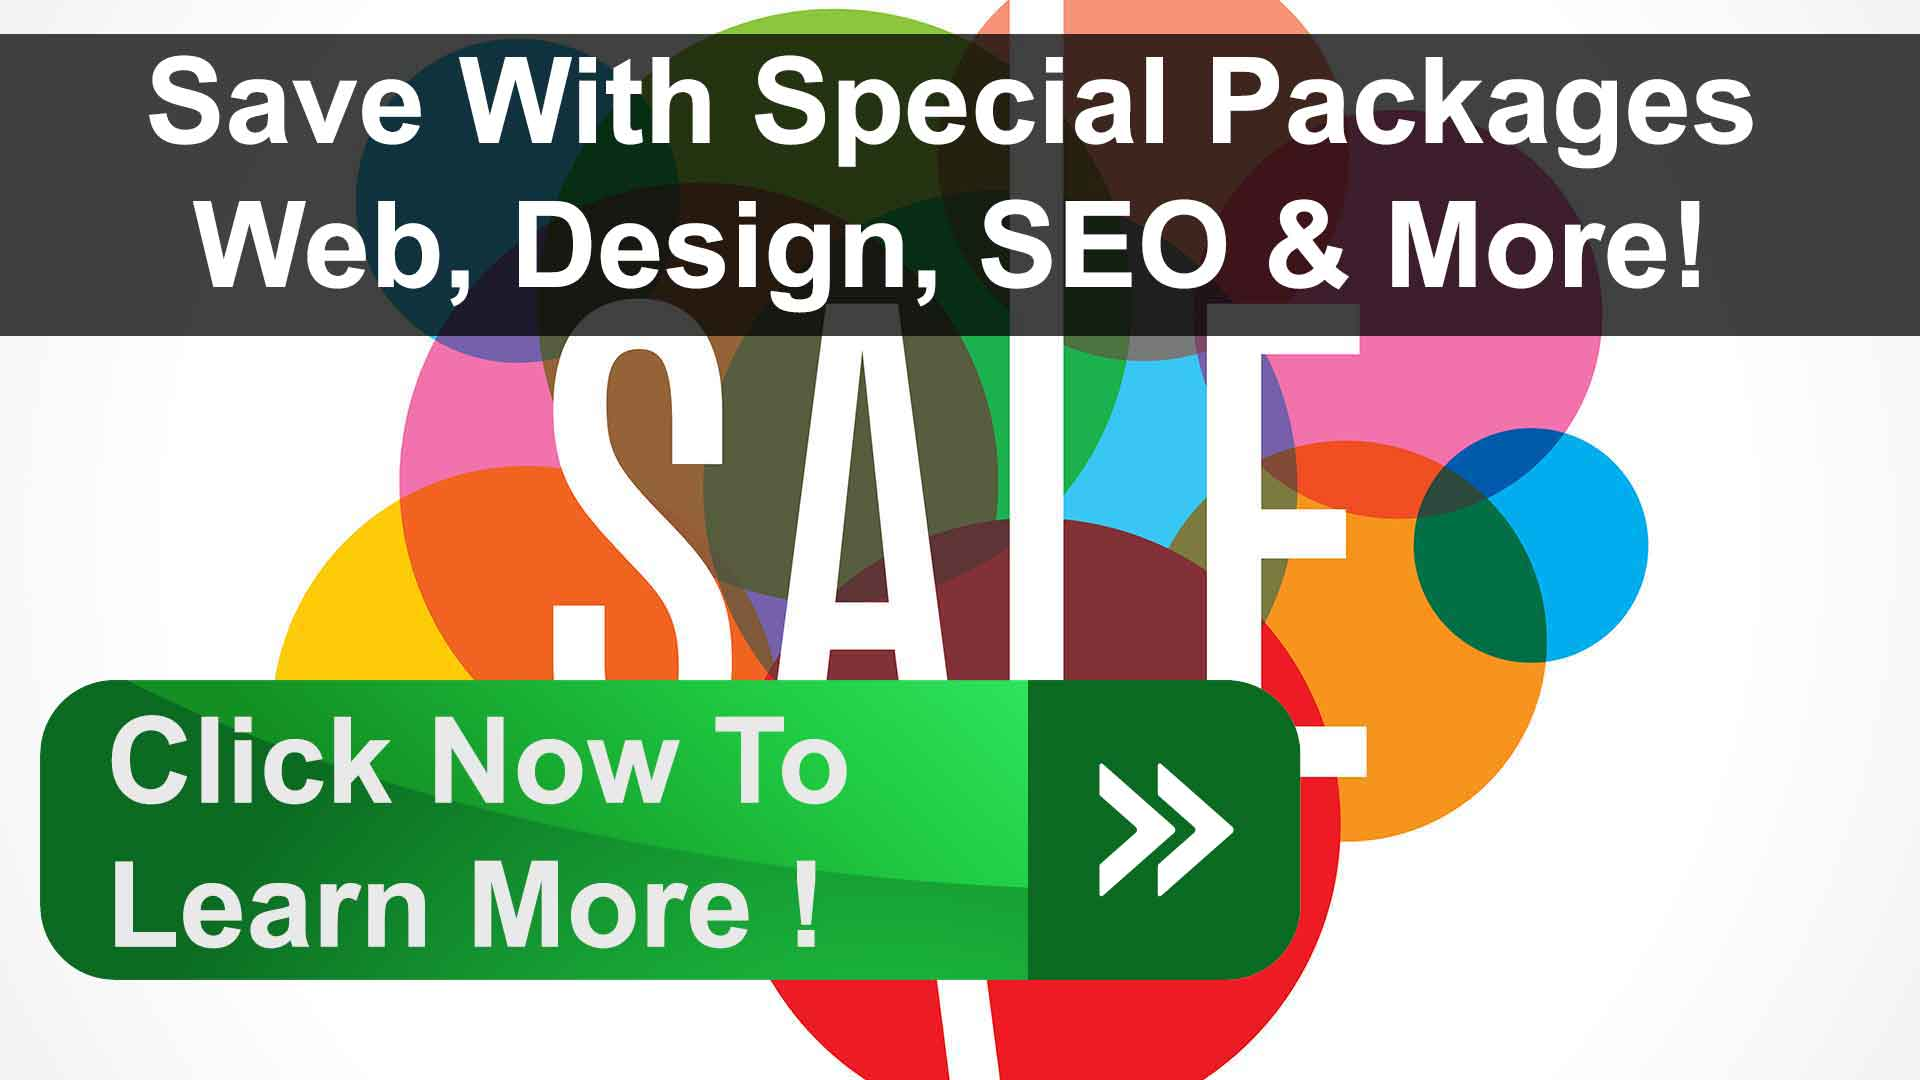 Special Website Packages & SEO!